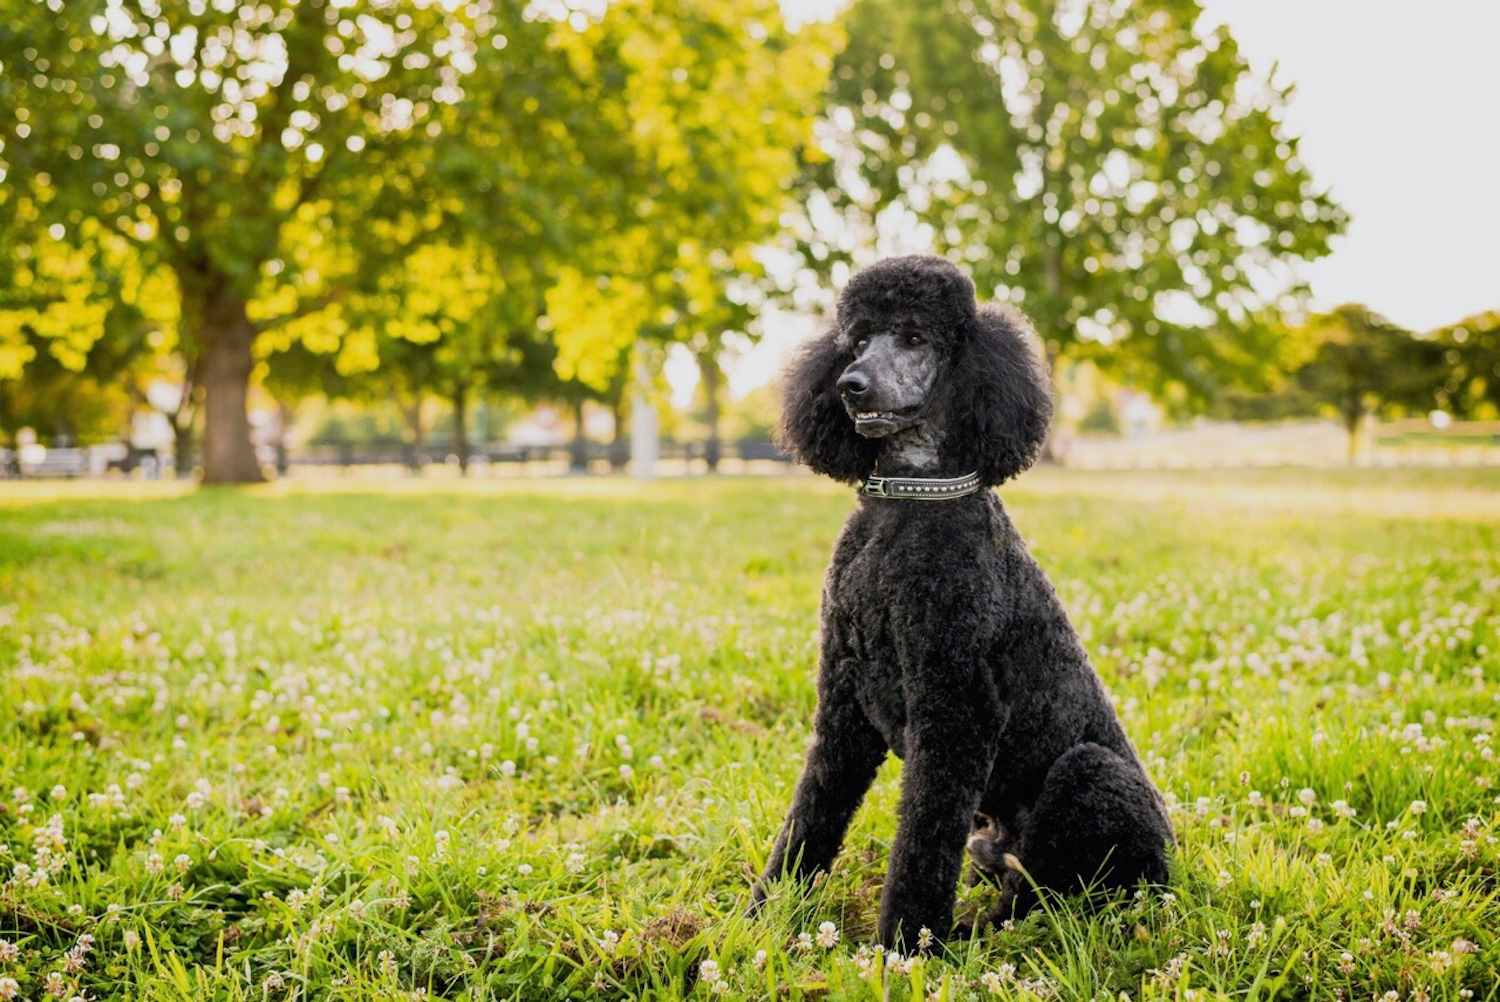 Poodle sitting in grass